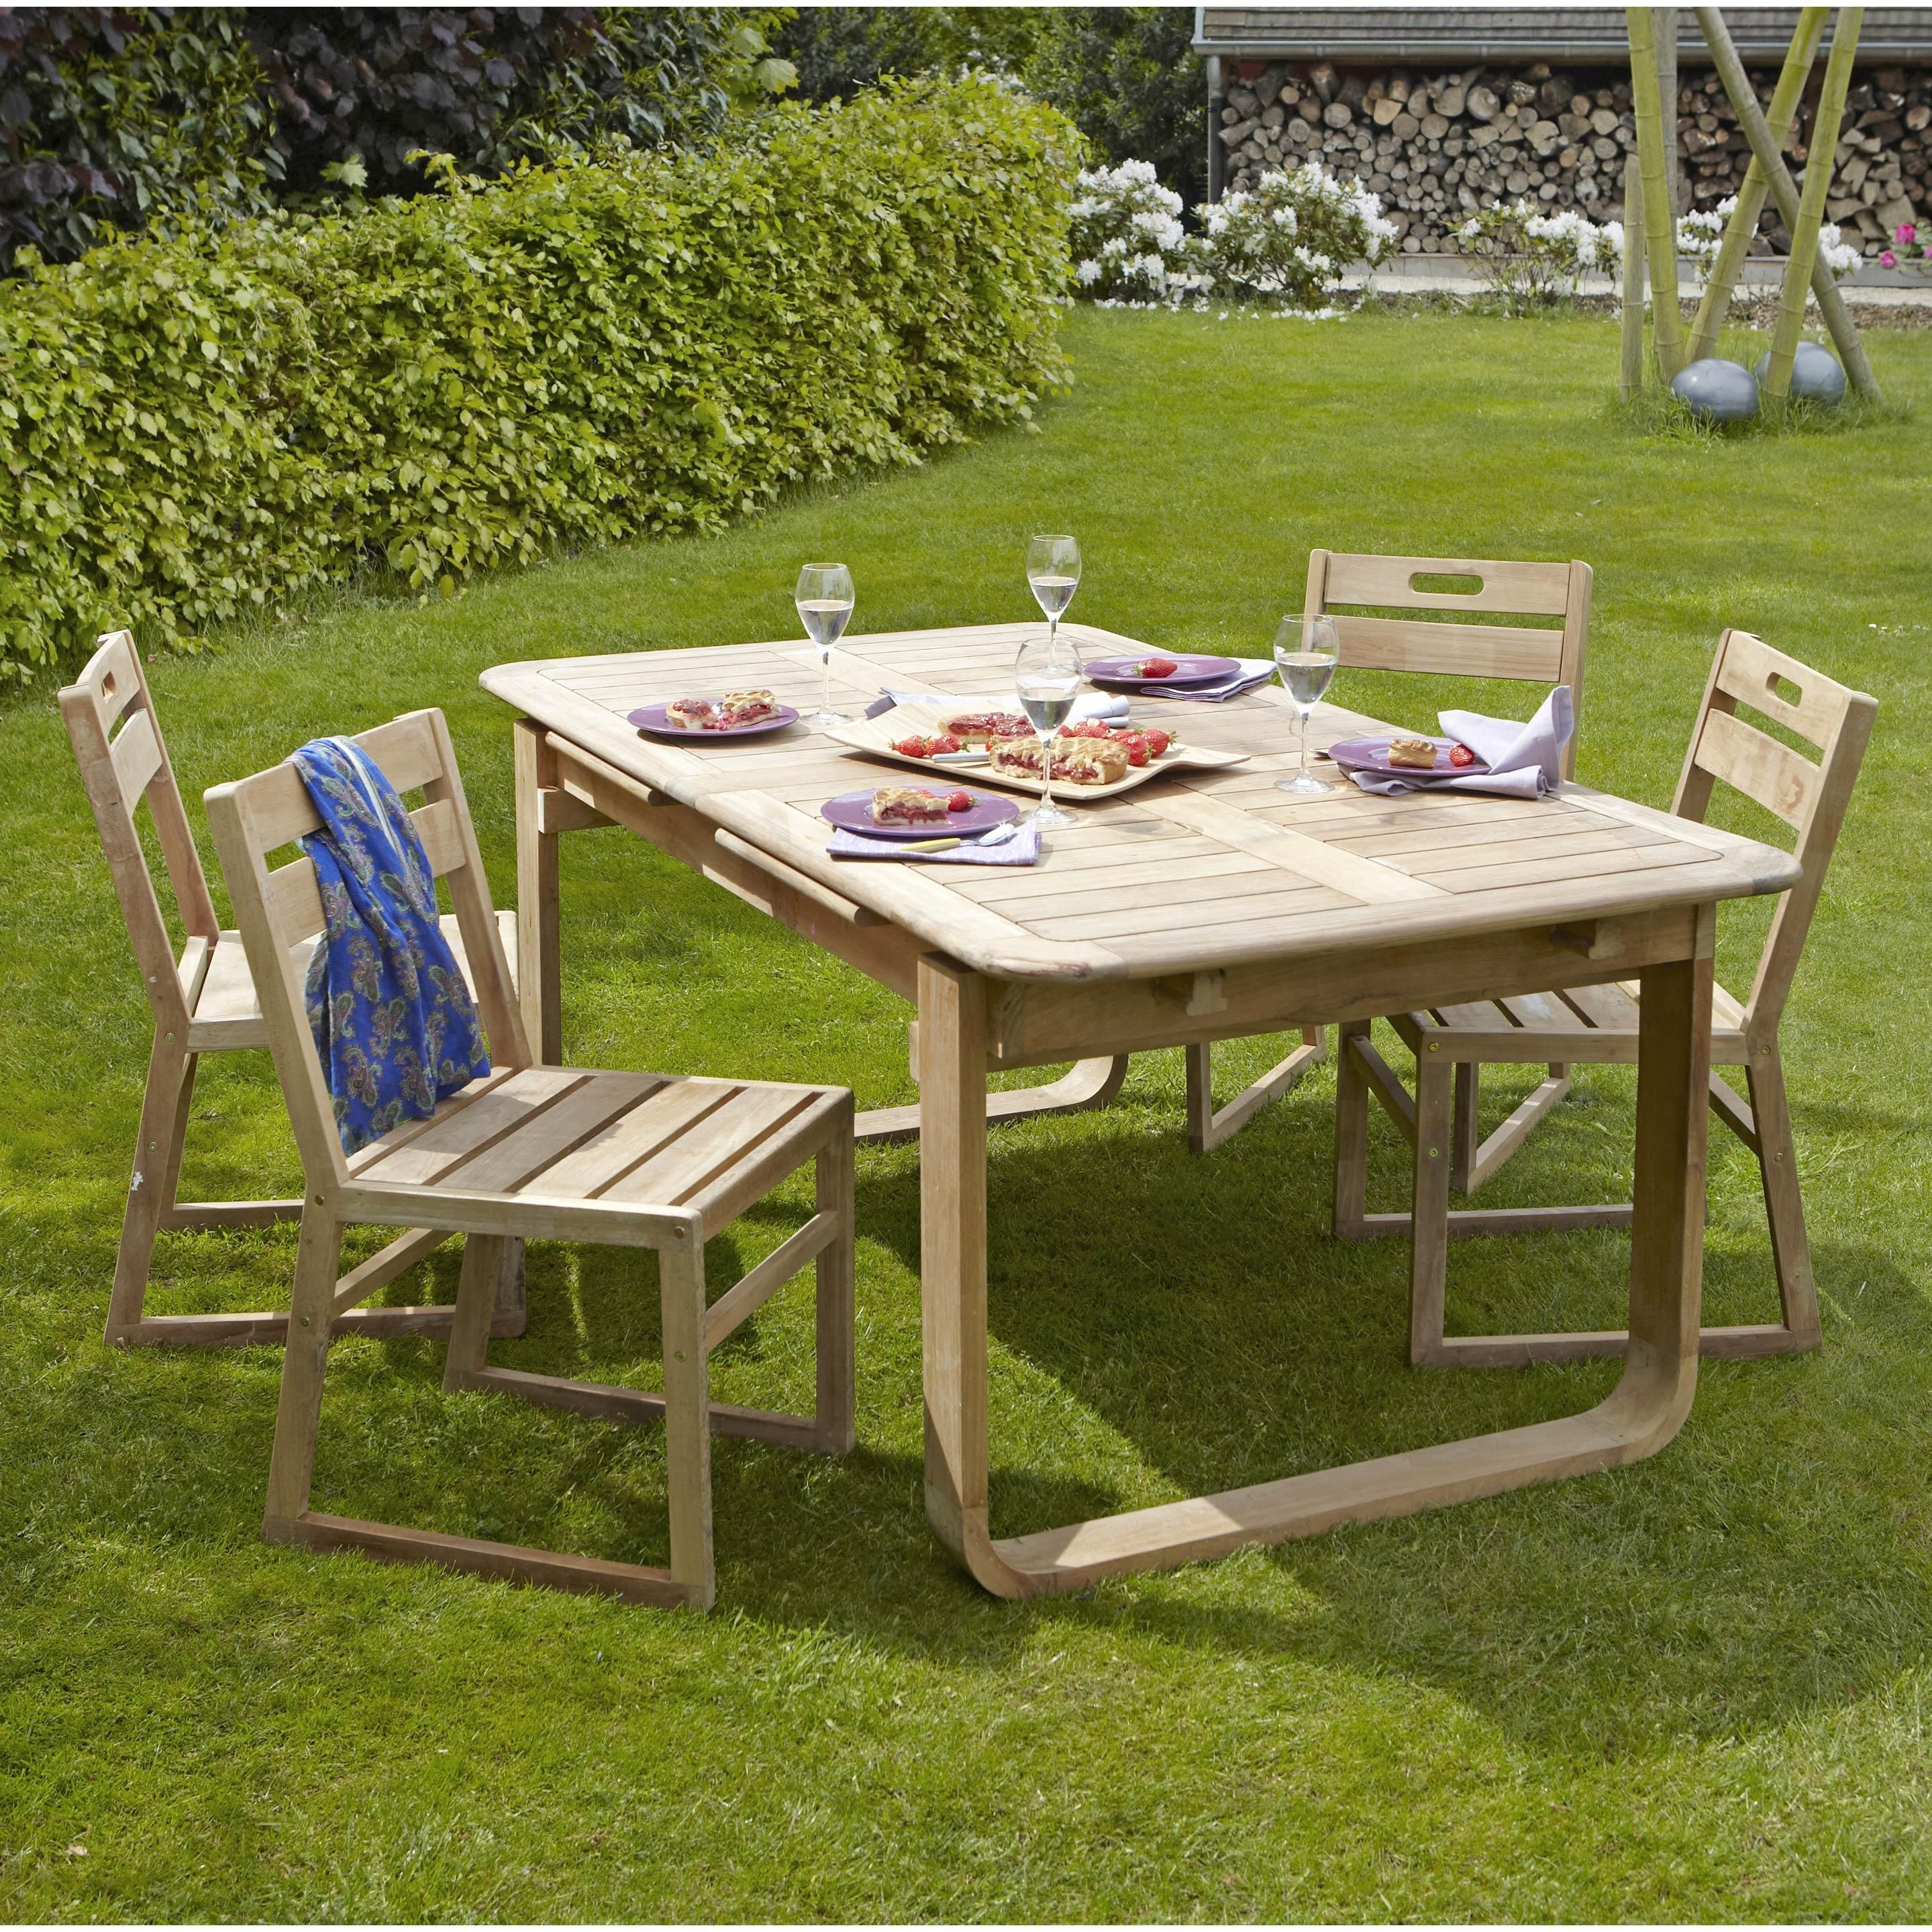 Salon De Jardin Resort Naterial Brun Marron 6 Personnes Leroy Merlin Table De Jardin Salon De Jardin Mobilier Jardin